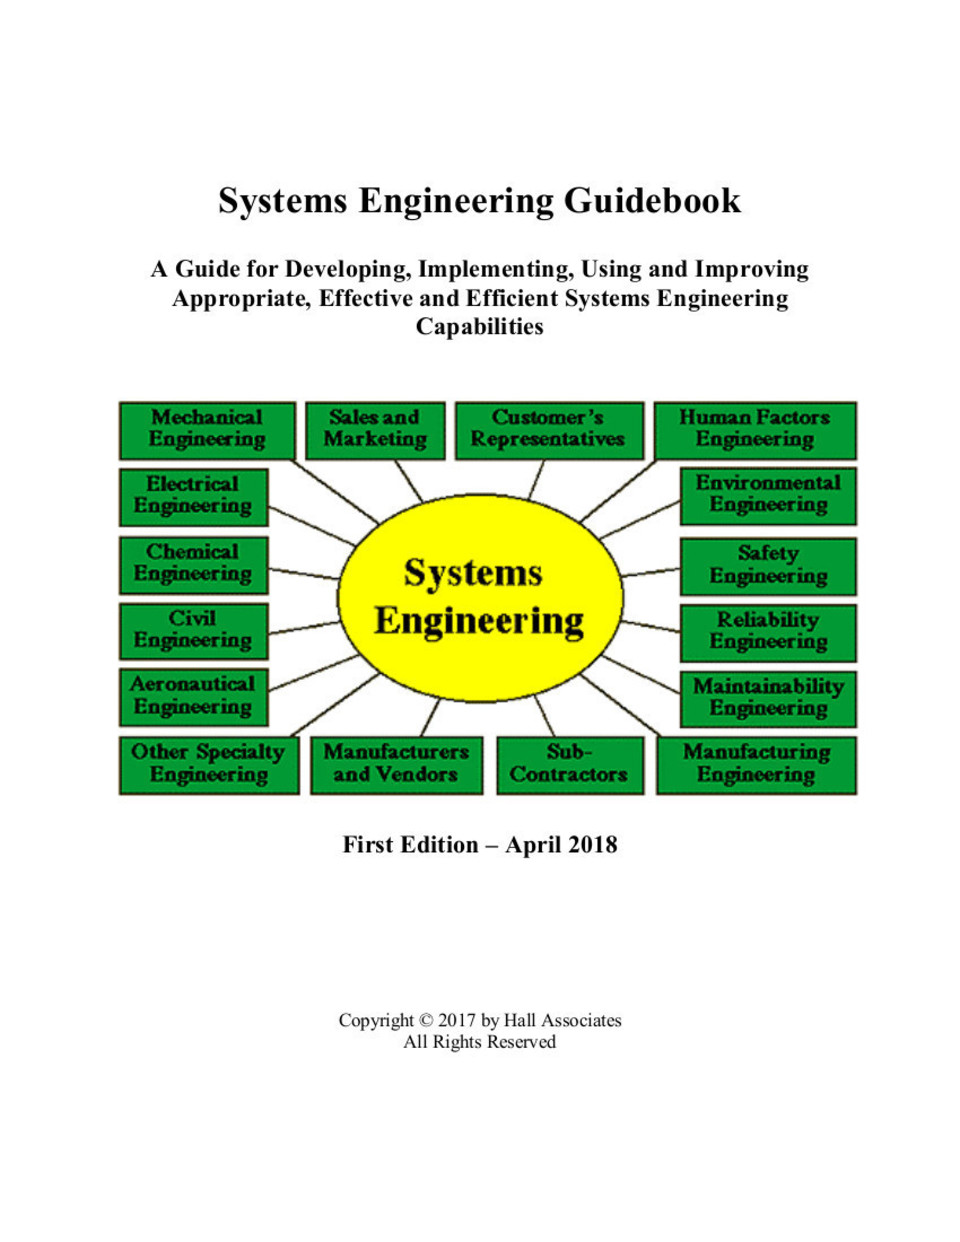 Systems engineering guidebook   isbn 978069209180720180420 2080 cx67ln